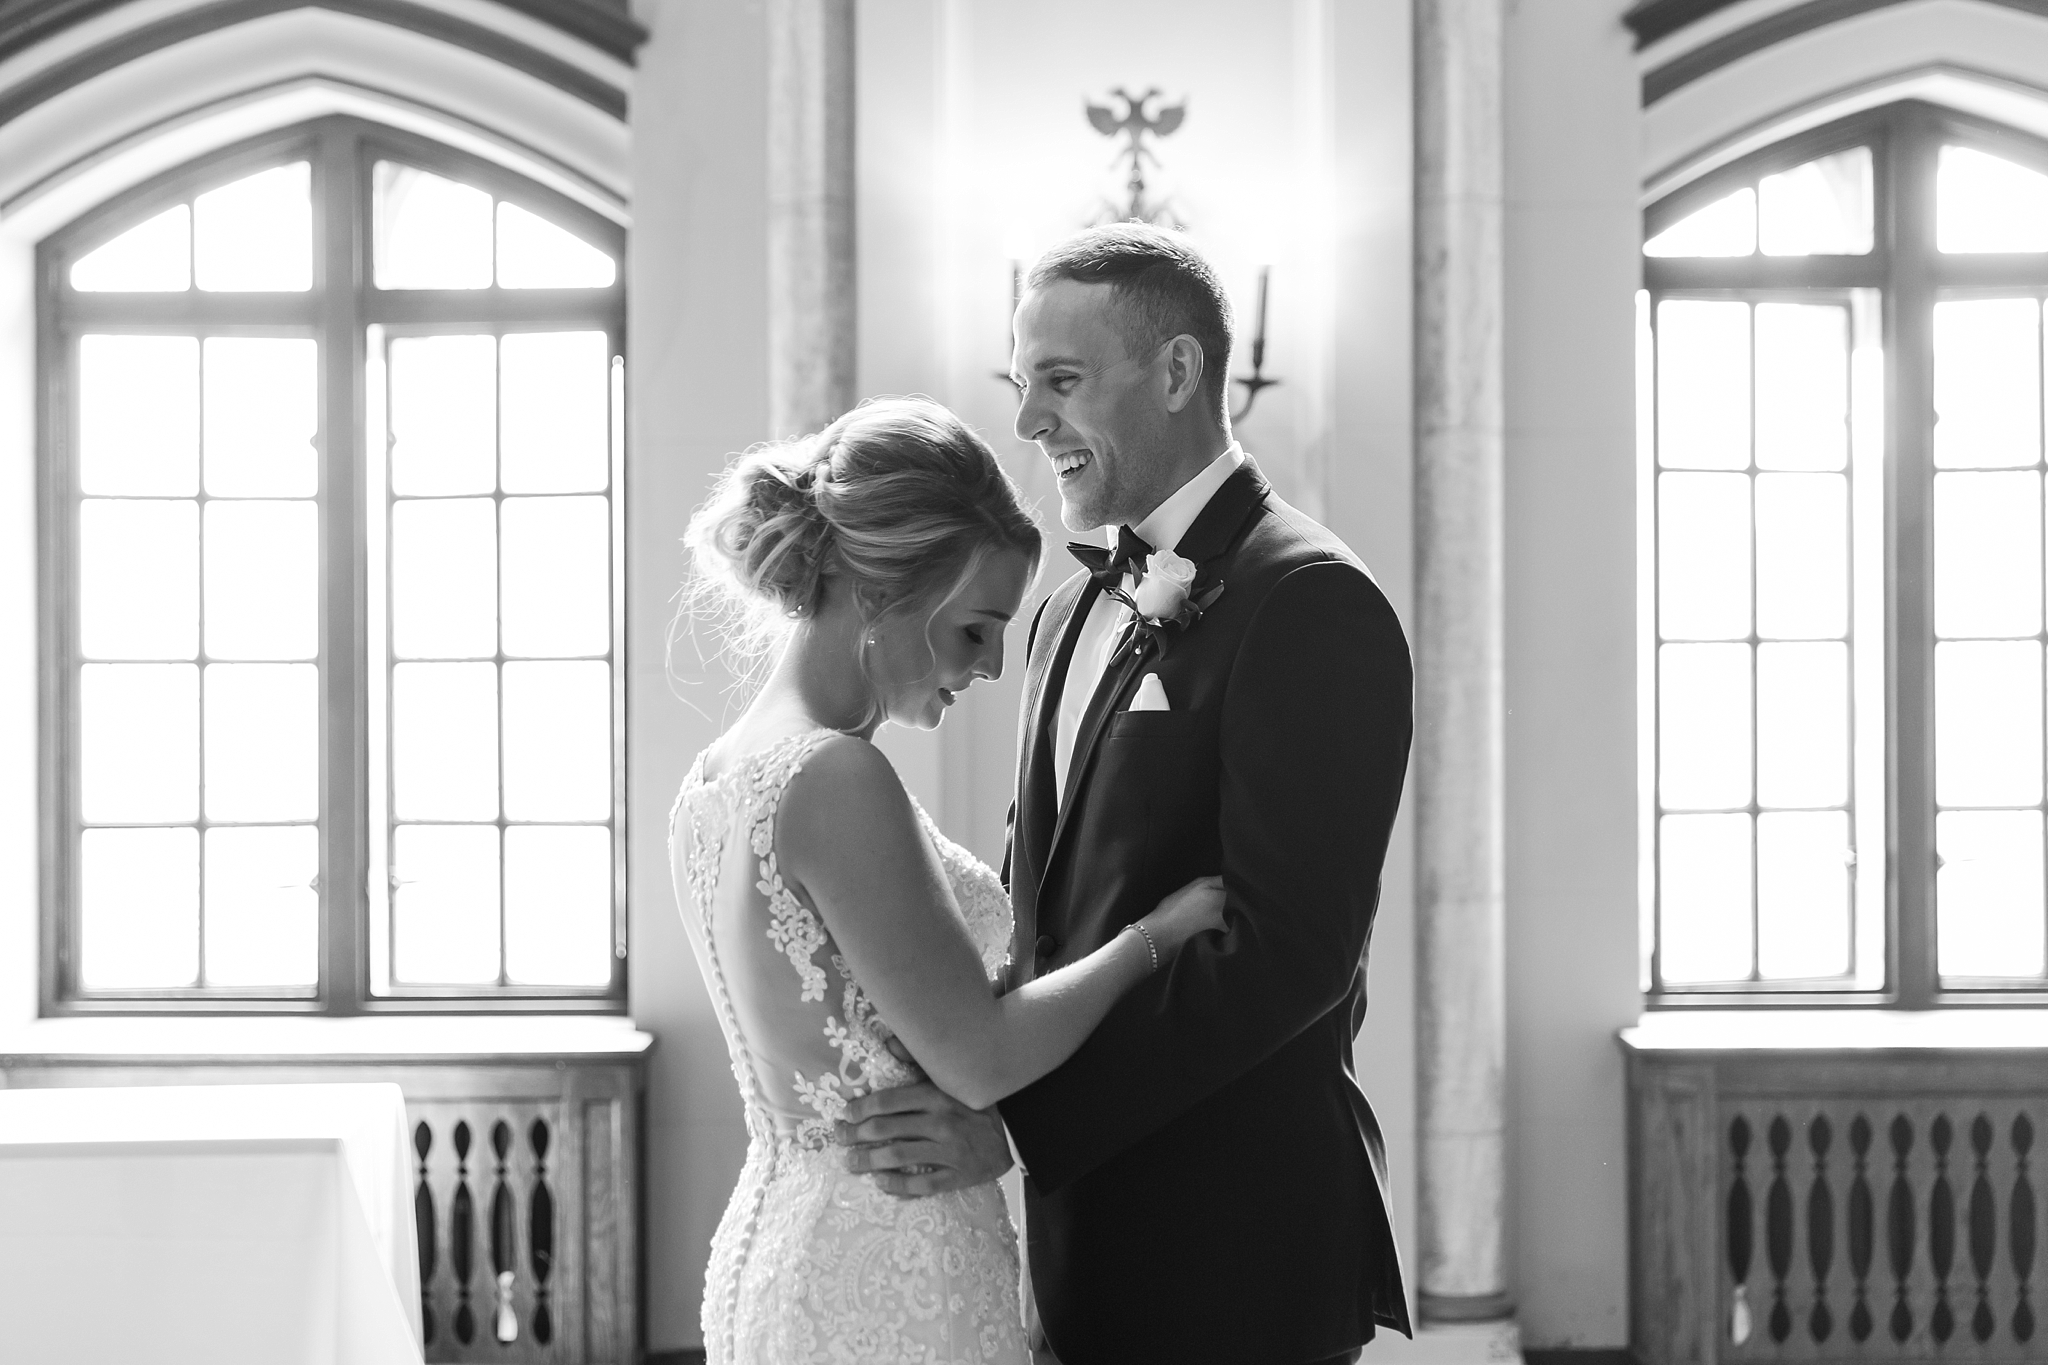 candid-romantic-wedding-photos-at-the-masonic-temple-belle-isle-detroit-institute-of-arts-in-detroit-michigan-by-courtney-carolyn-photography_0026.jpg